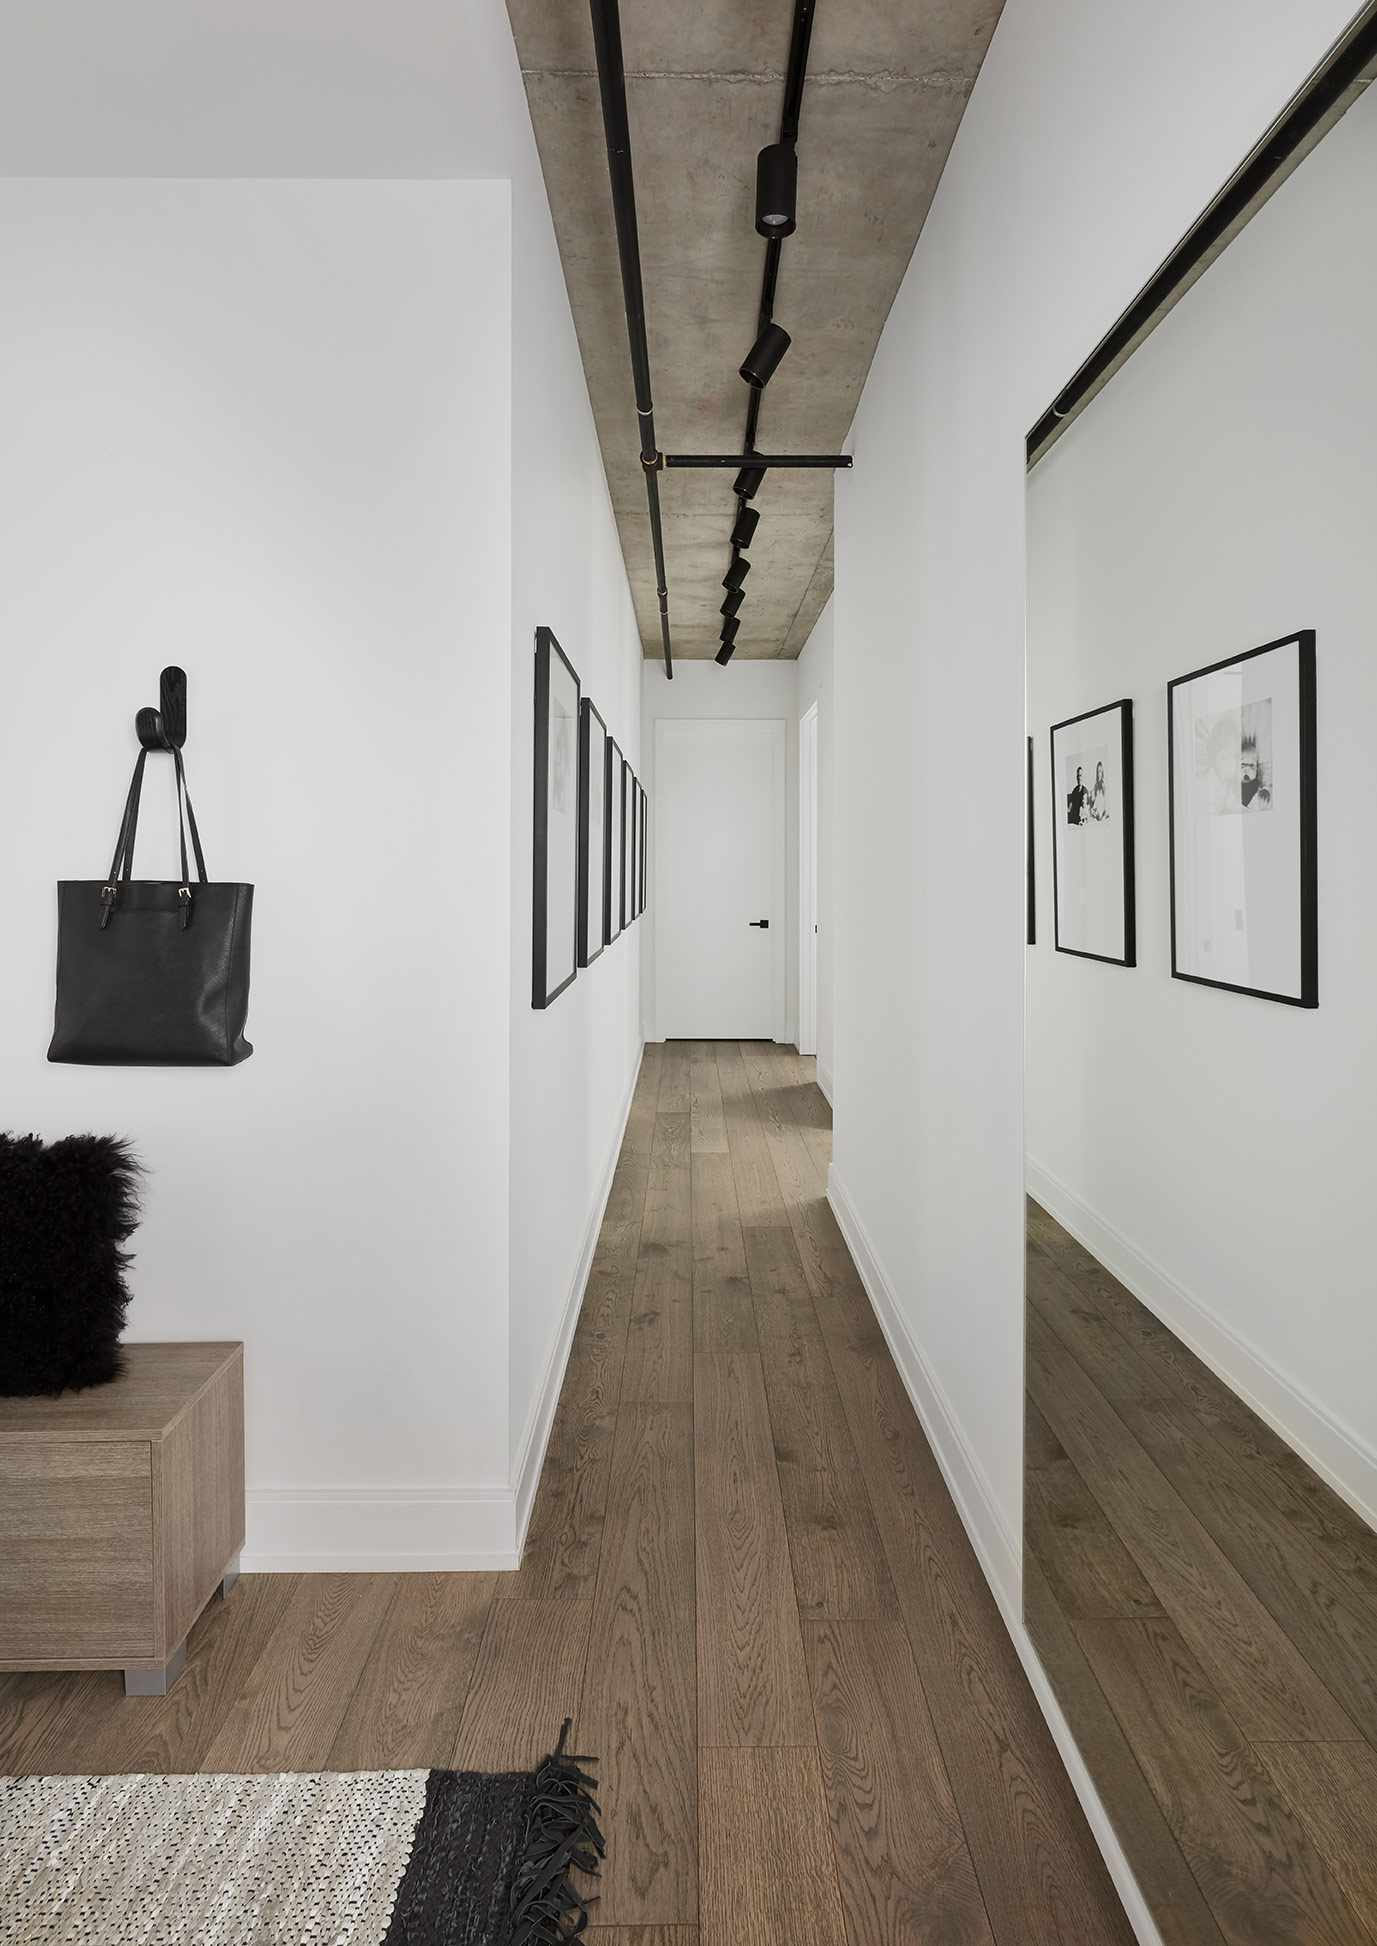 Hallway with straight line of hanging photos